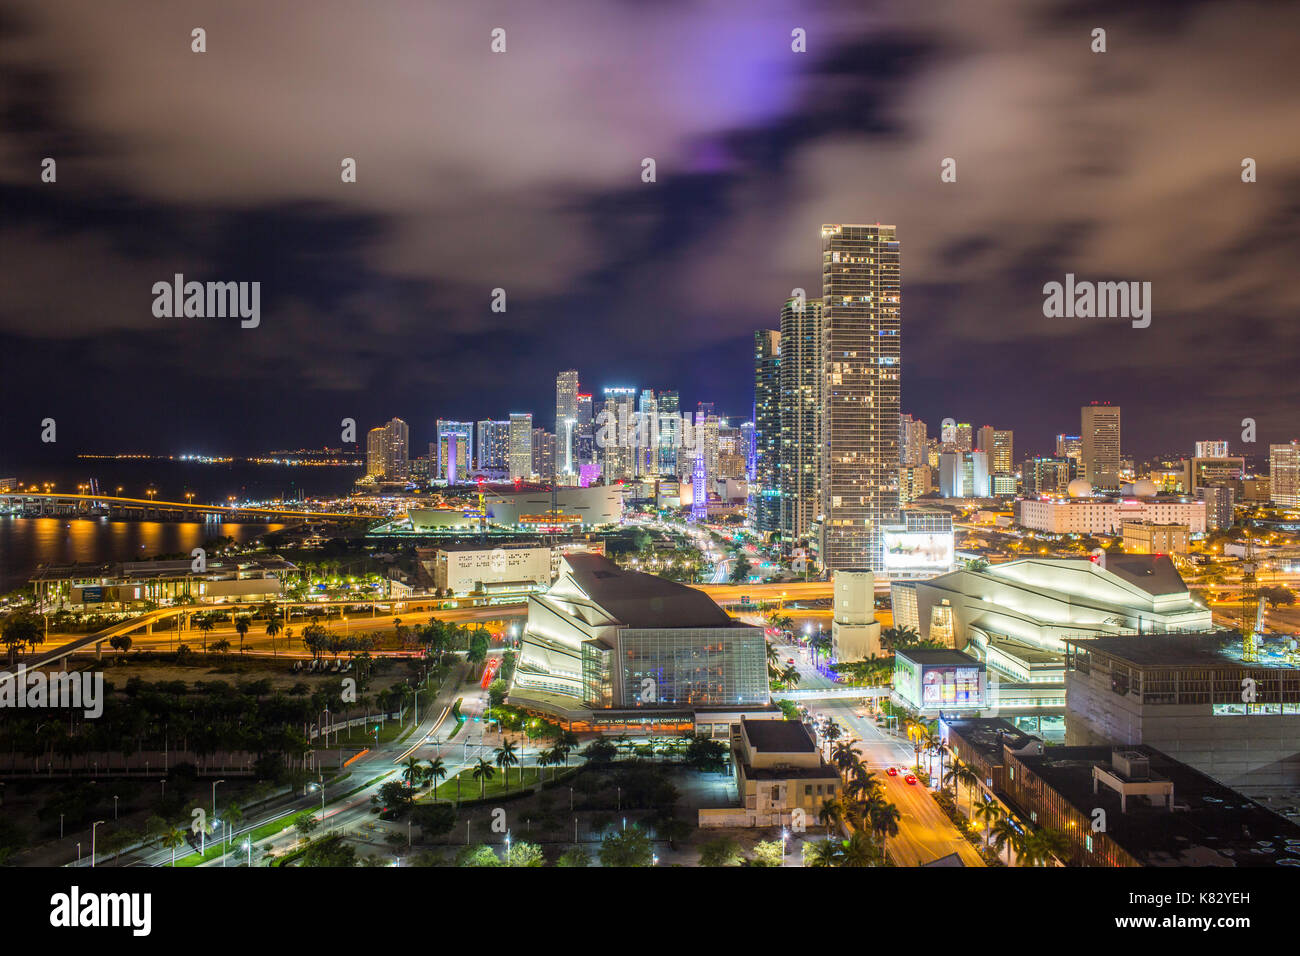 Elevated view over Biscayne Boulevard and the skyline of Miami, Florida, USA - Stock Image